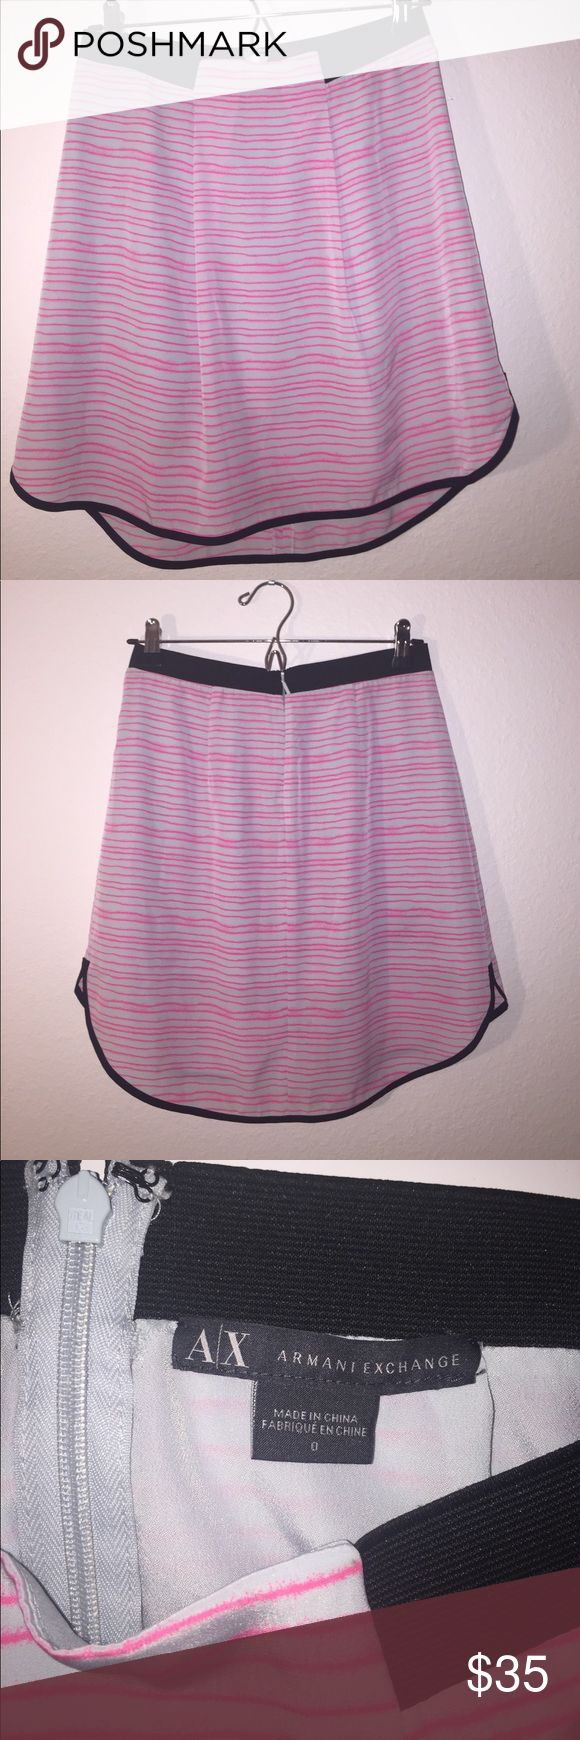 Armani Exchange Skirt Armani Exchange skirt with lining that zips up in the back. Waistband fit.  Shell: 100% Polyester Lining: 100% Polyester. Only worn a couple of times. I don't wear skirts in the cold weather anymore. A/X Armani Exchange Skirts A-Line or Full